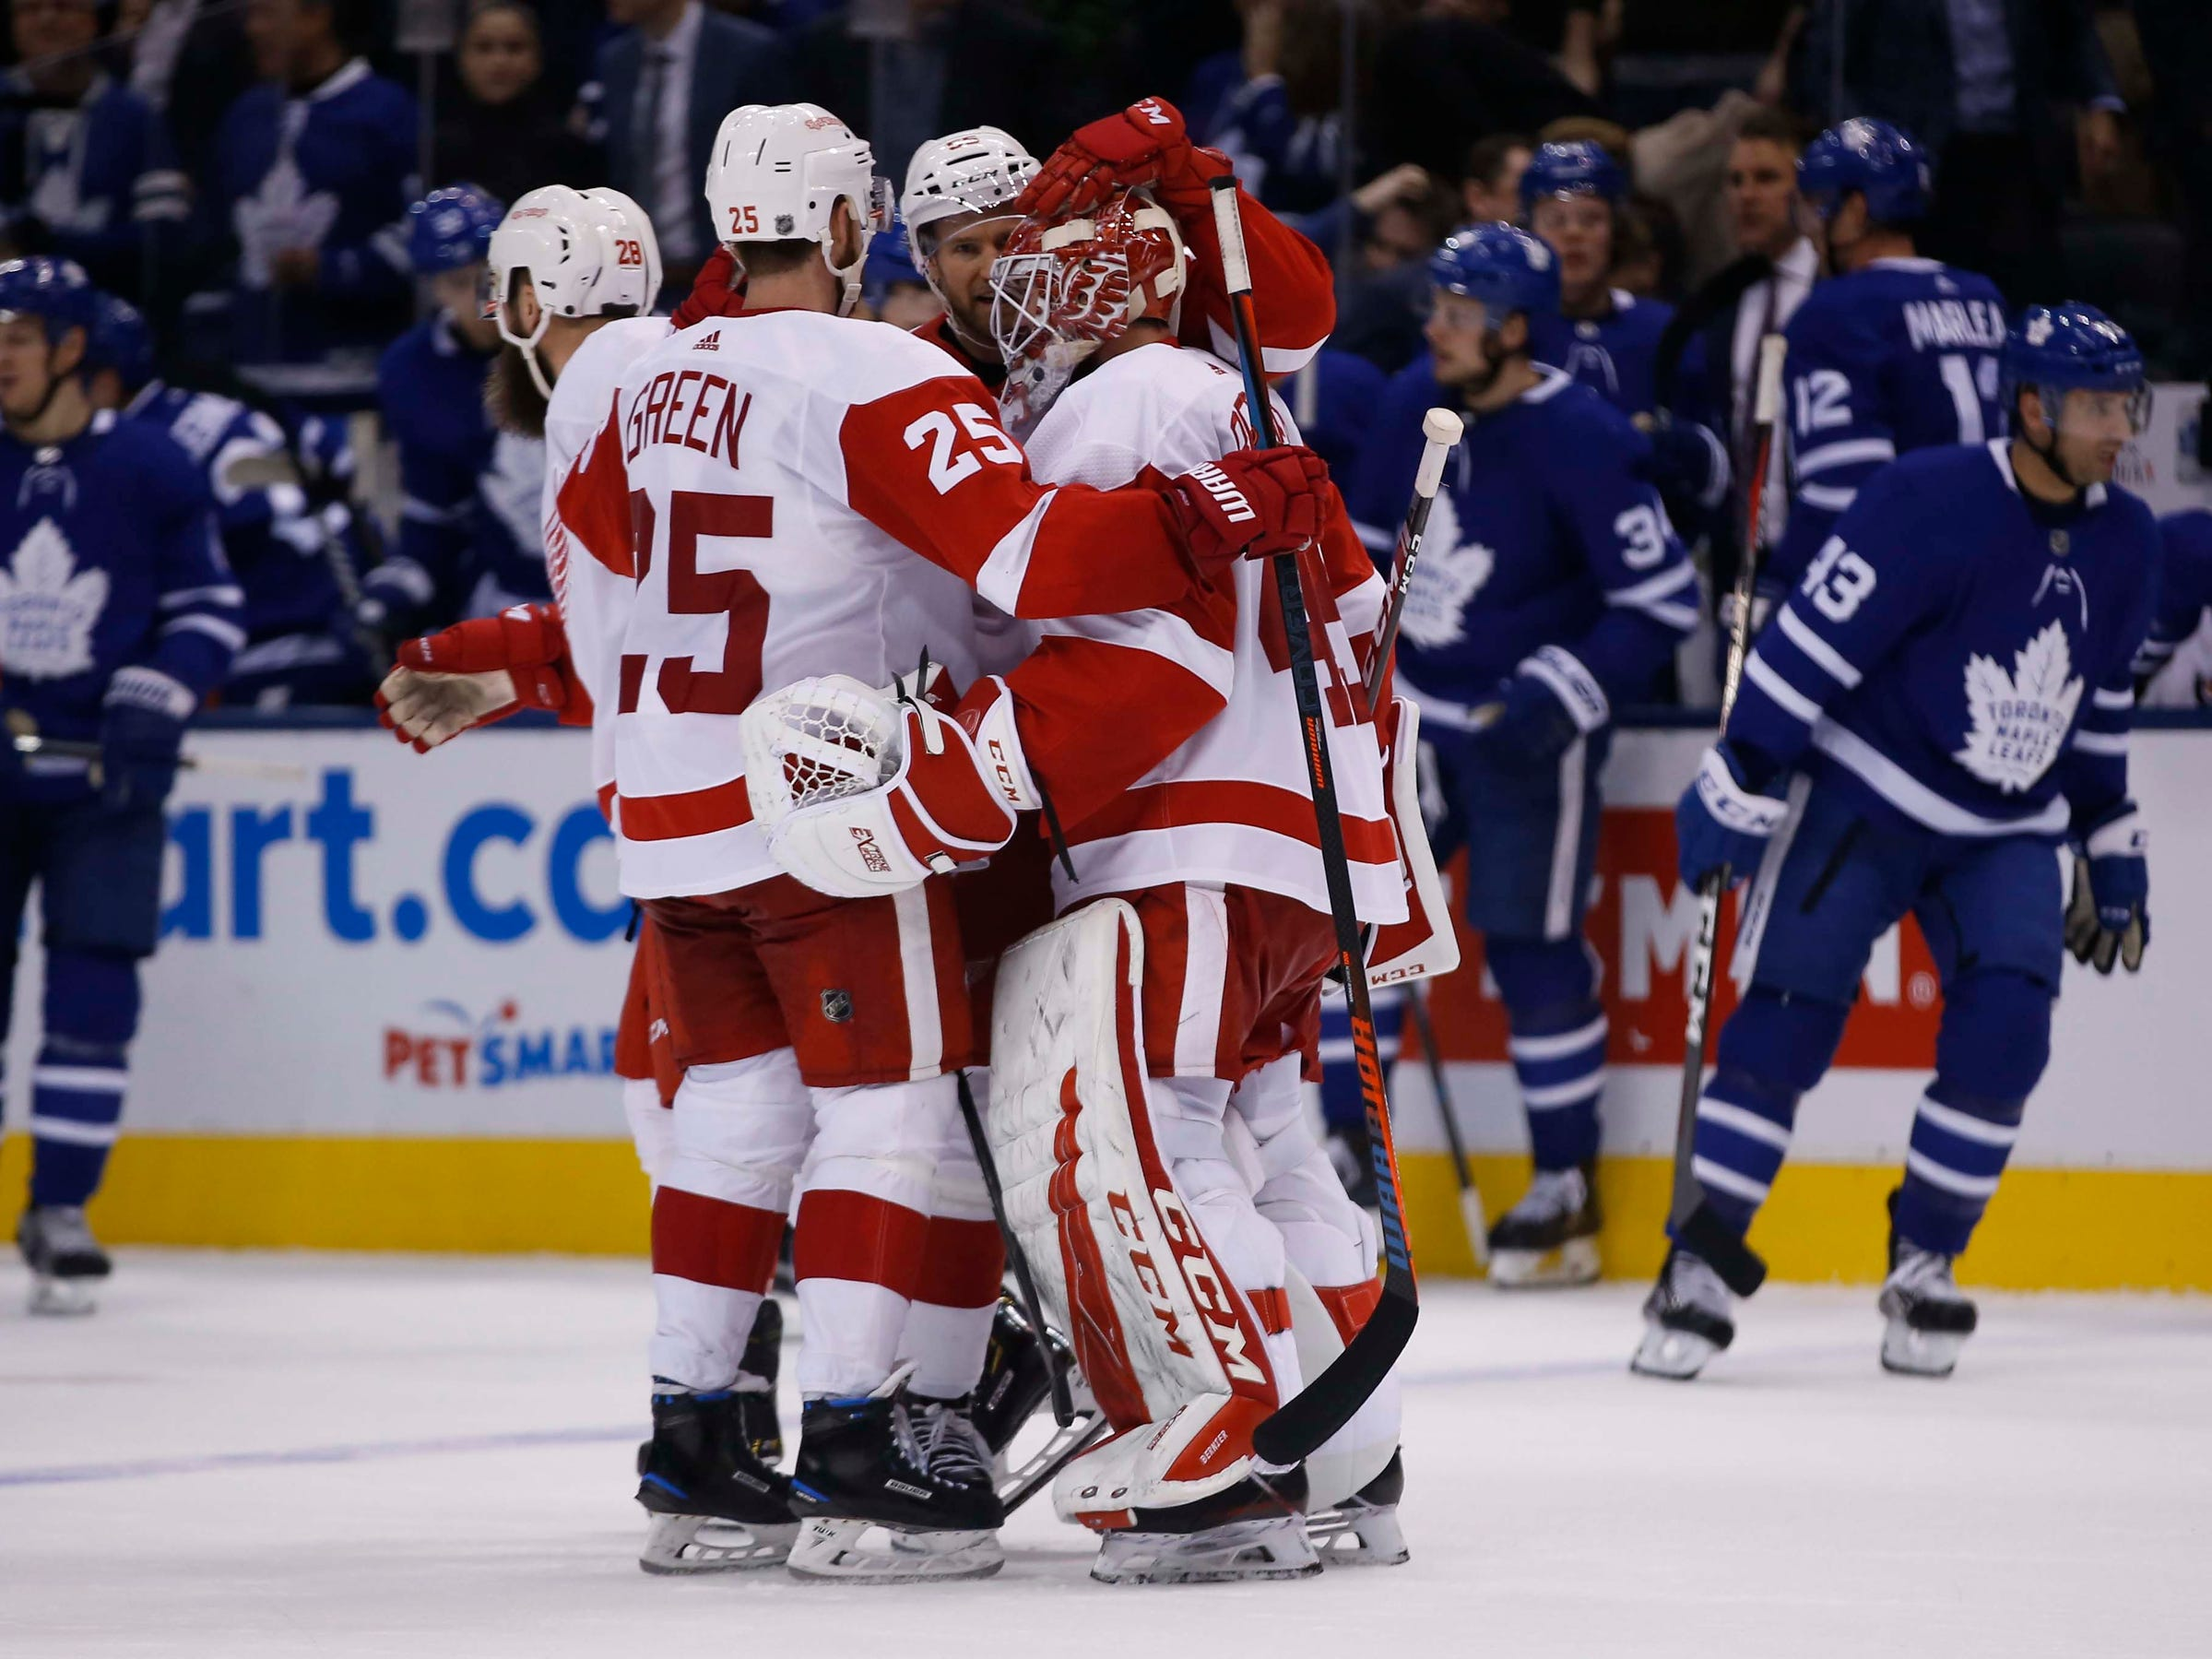 Detroit Red Wings' Mike Green (25) and goaltender Jonathan Bernier (45) celebrate a 5-4 OT win over the Toronto Maple Leafs at Scotiabank Arena, Thursday, Dec. 6, 2018.